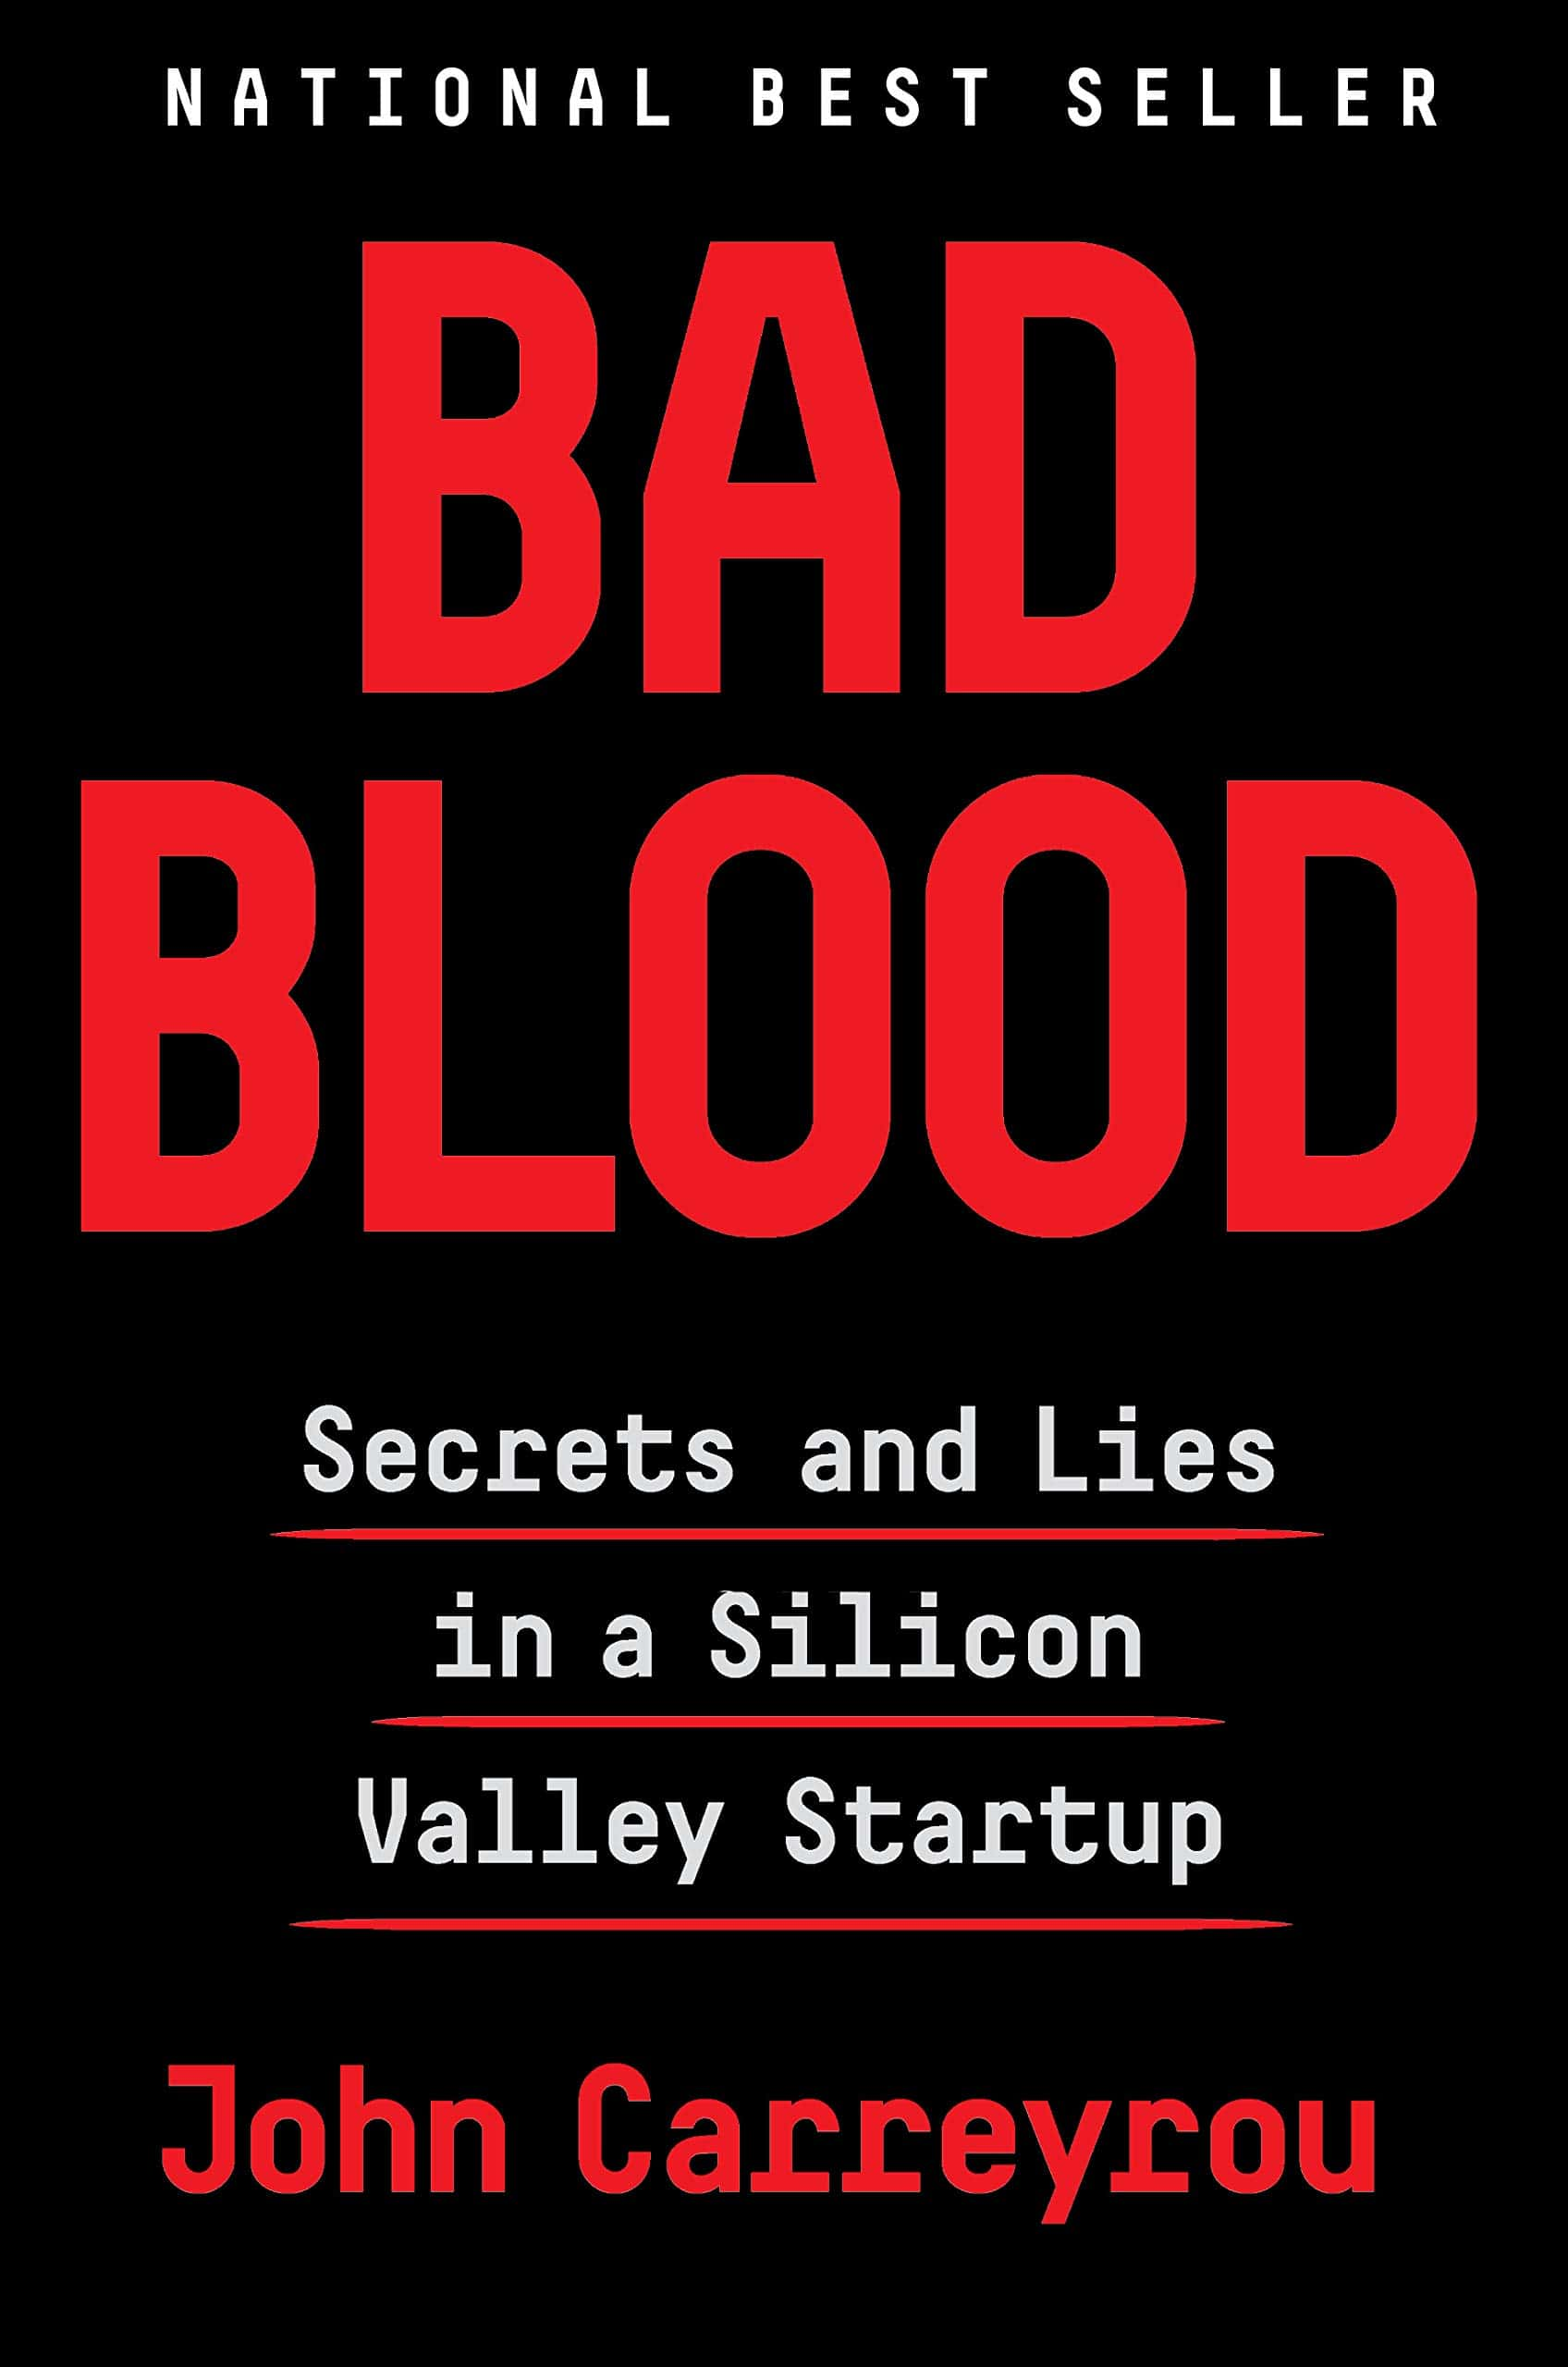 Bad Blood: Secrets and Lies in a Silicon Valley Startup, kirjoittanut John Carreyrou - kirjan kansikuva